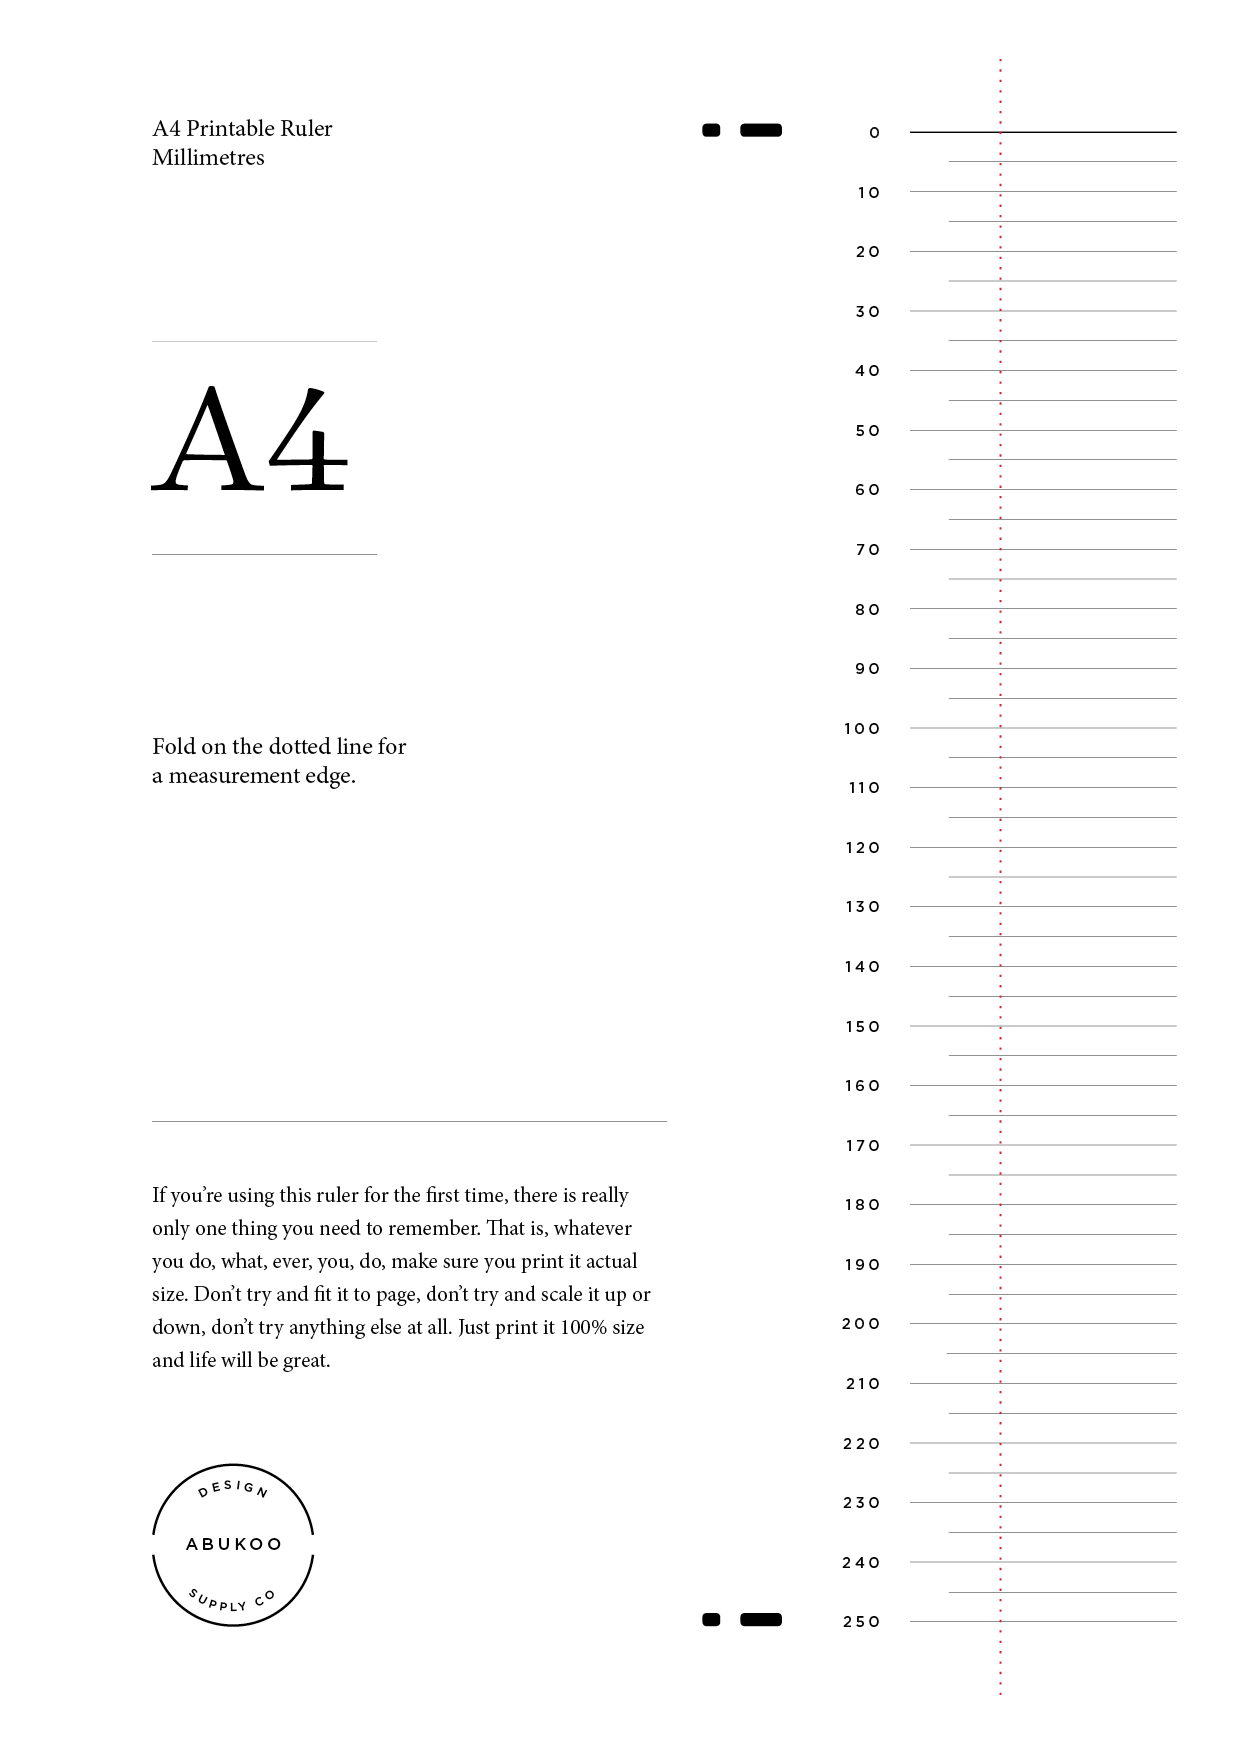 picture about Printable Ruler referred to as Printable Ruler Layout - Abukoo